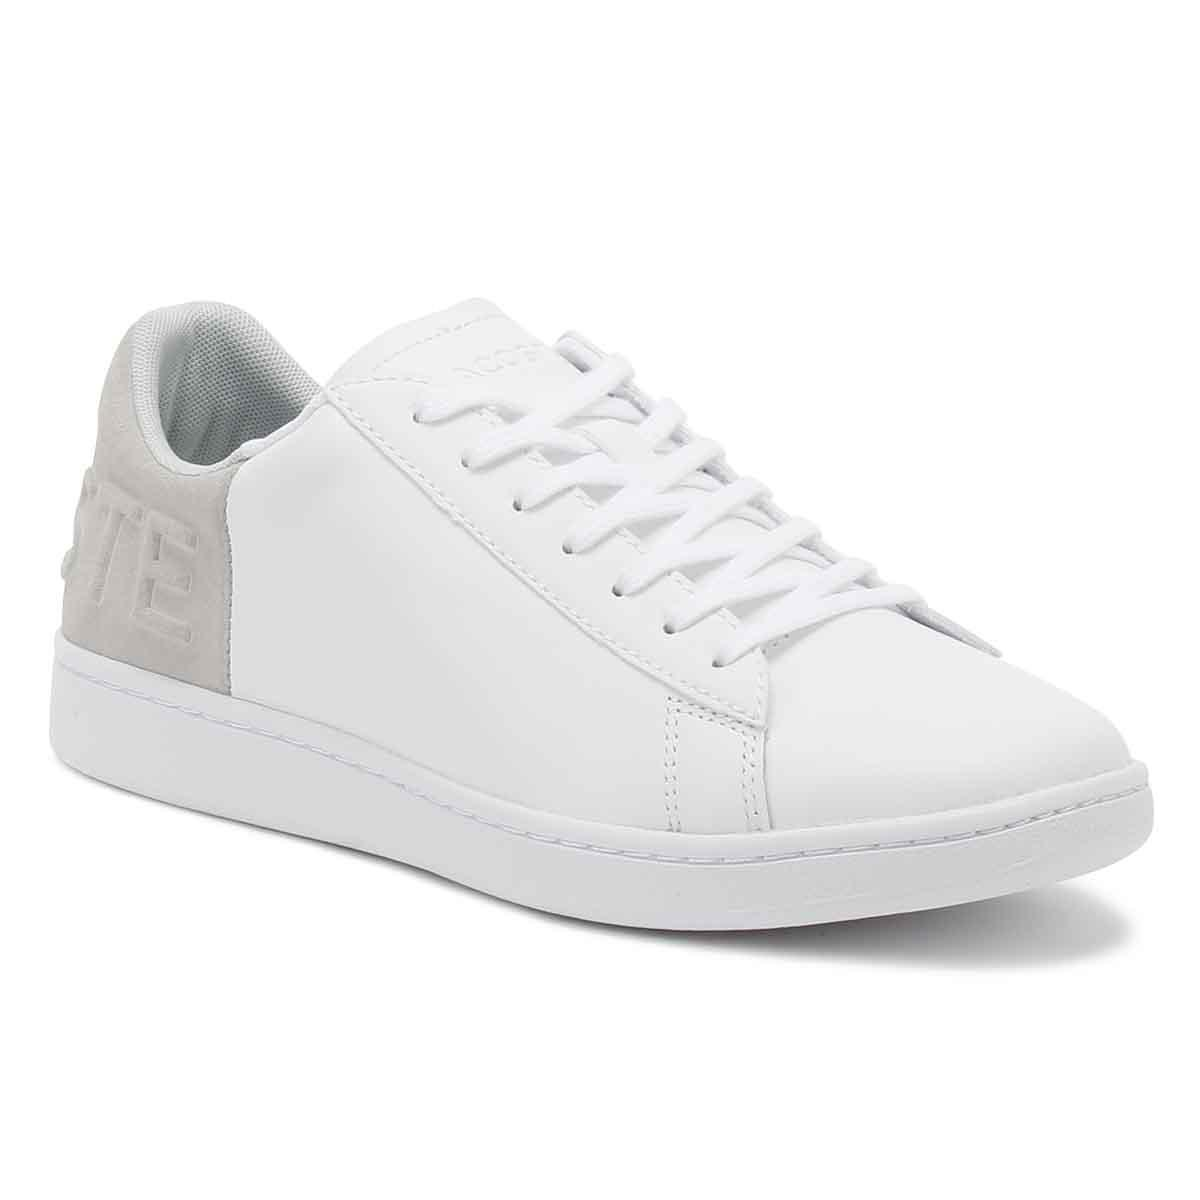 ff17227124be7 Lyst - Lacoste Womens White   Light Grey Carnaby Evo 318 3 Trainers ...